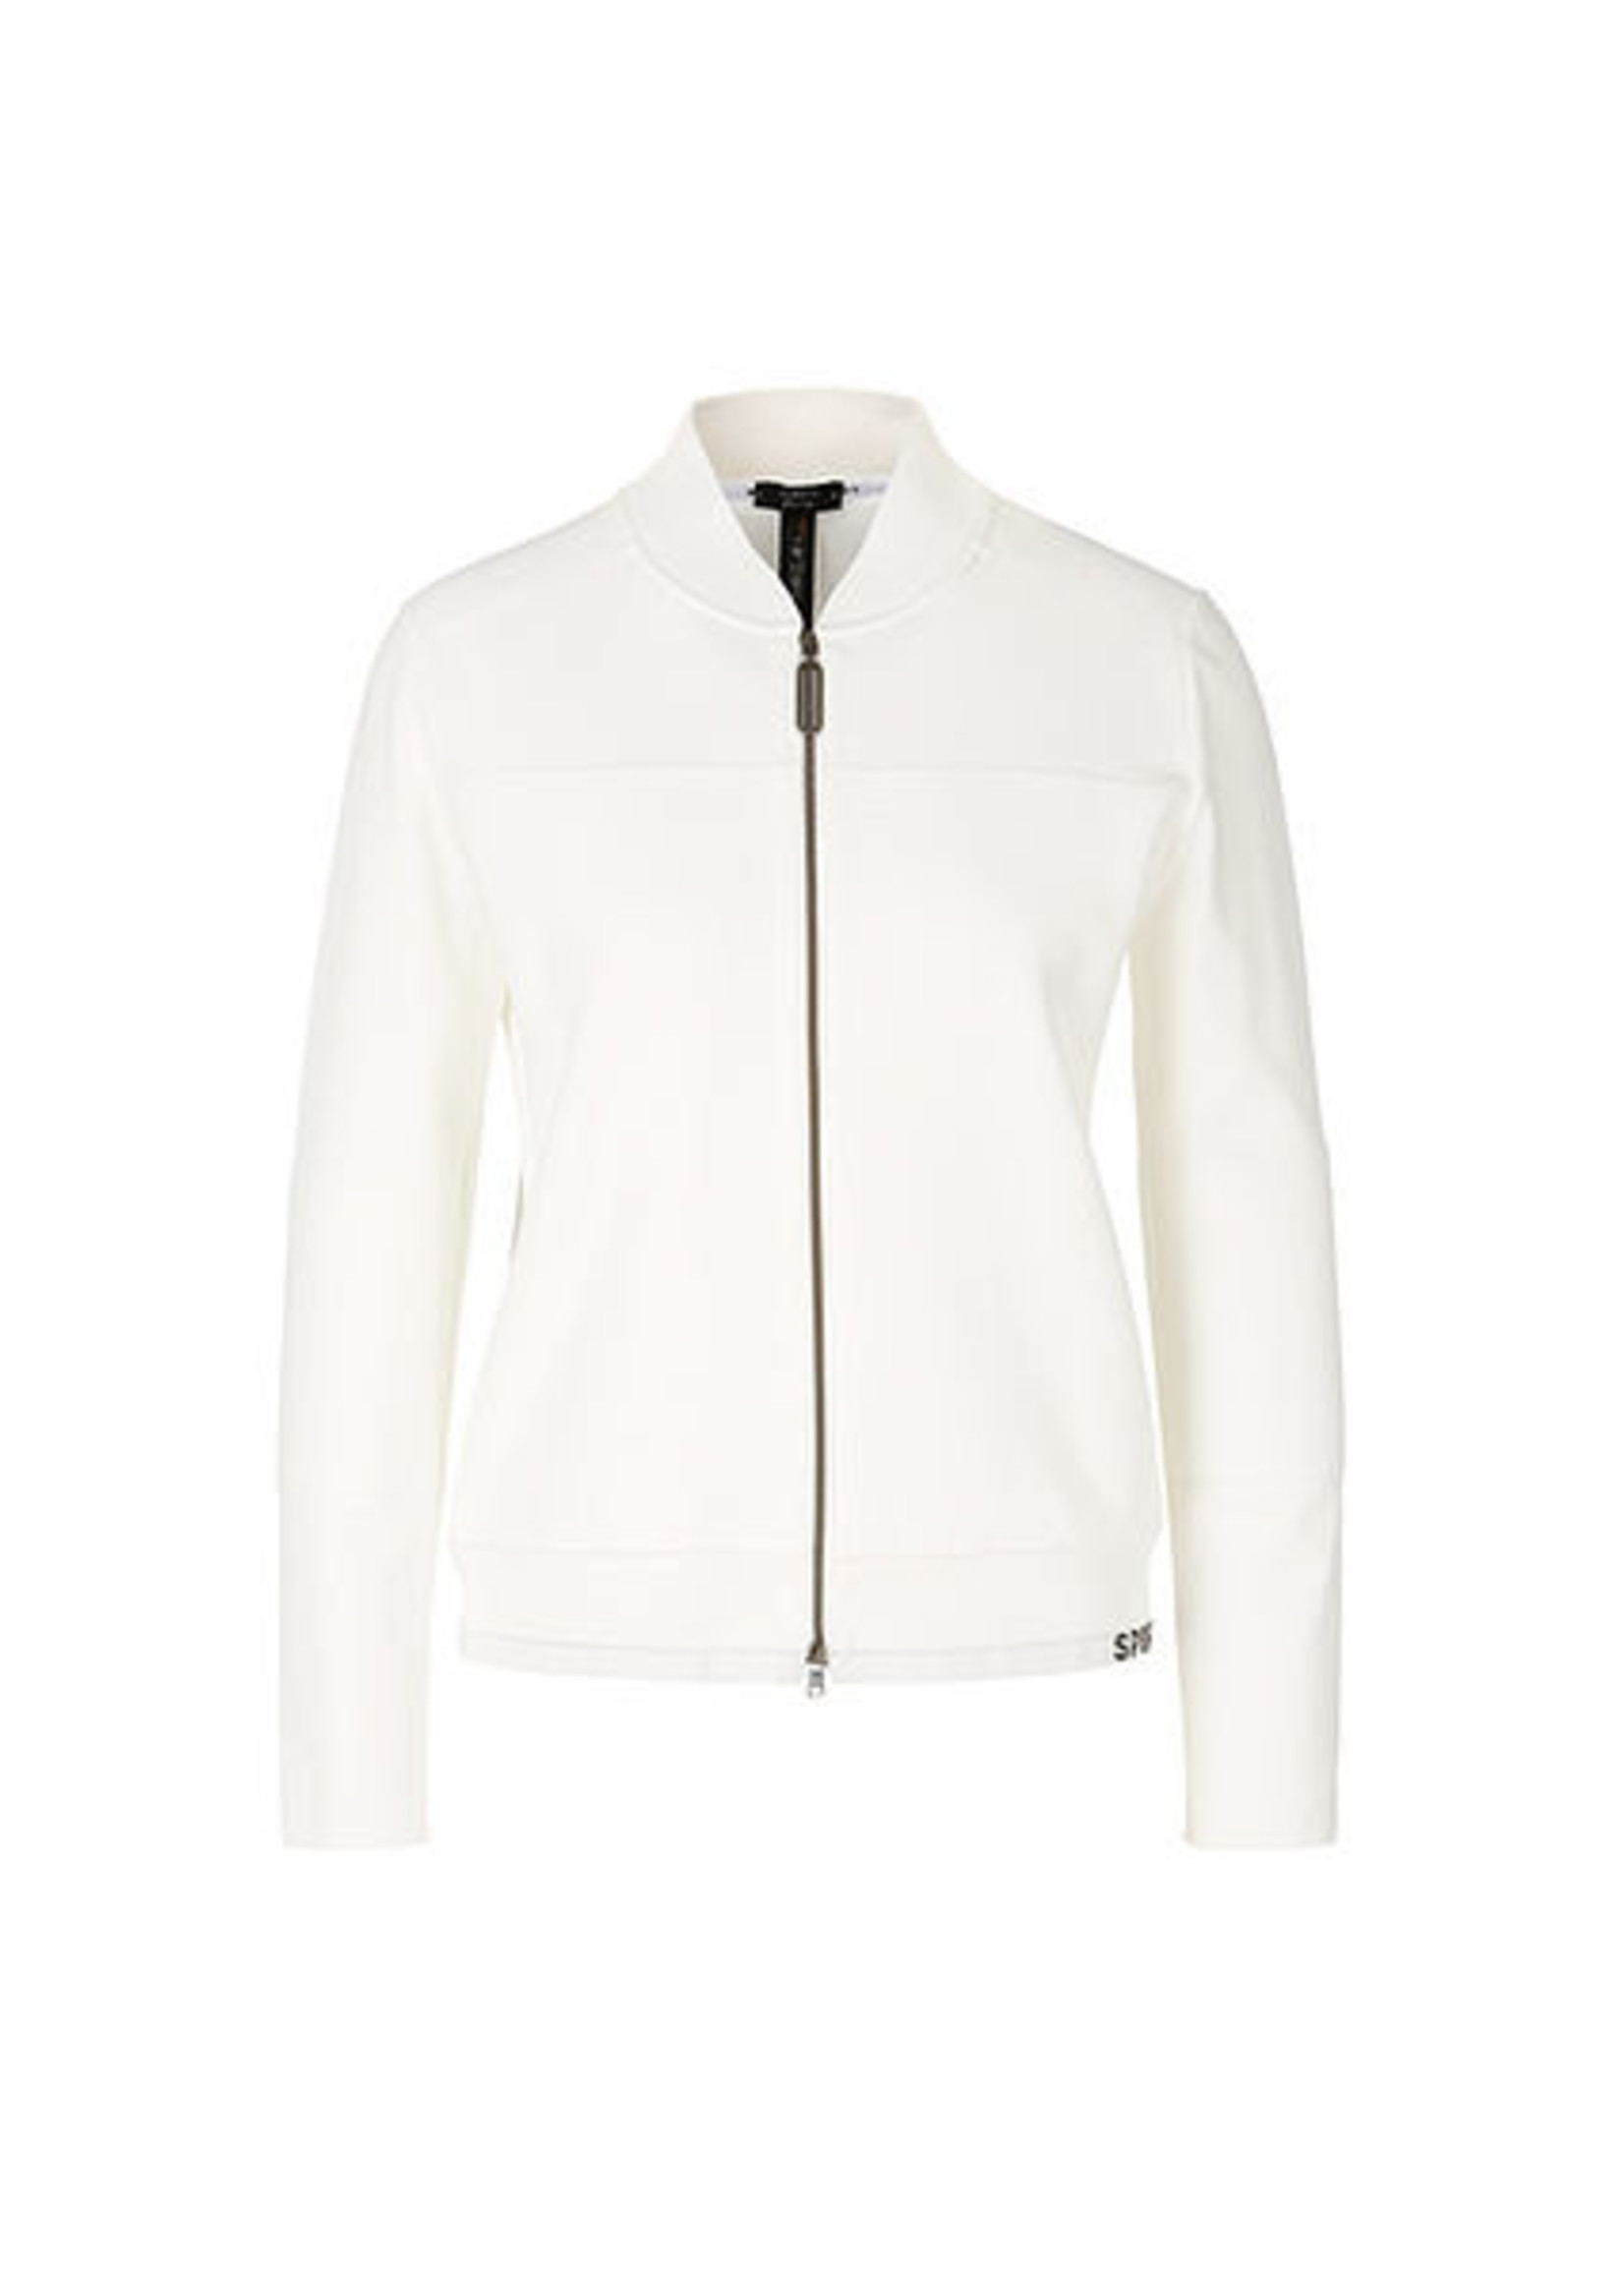 Marccain Sports Jack RS 31.13 M12 off-white